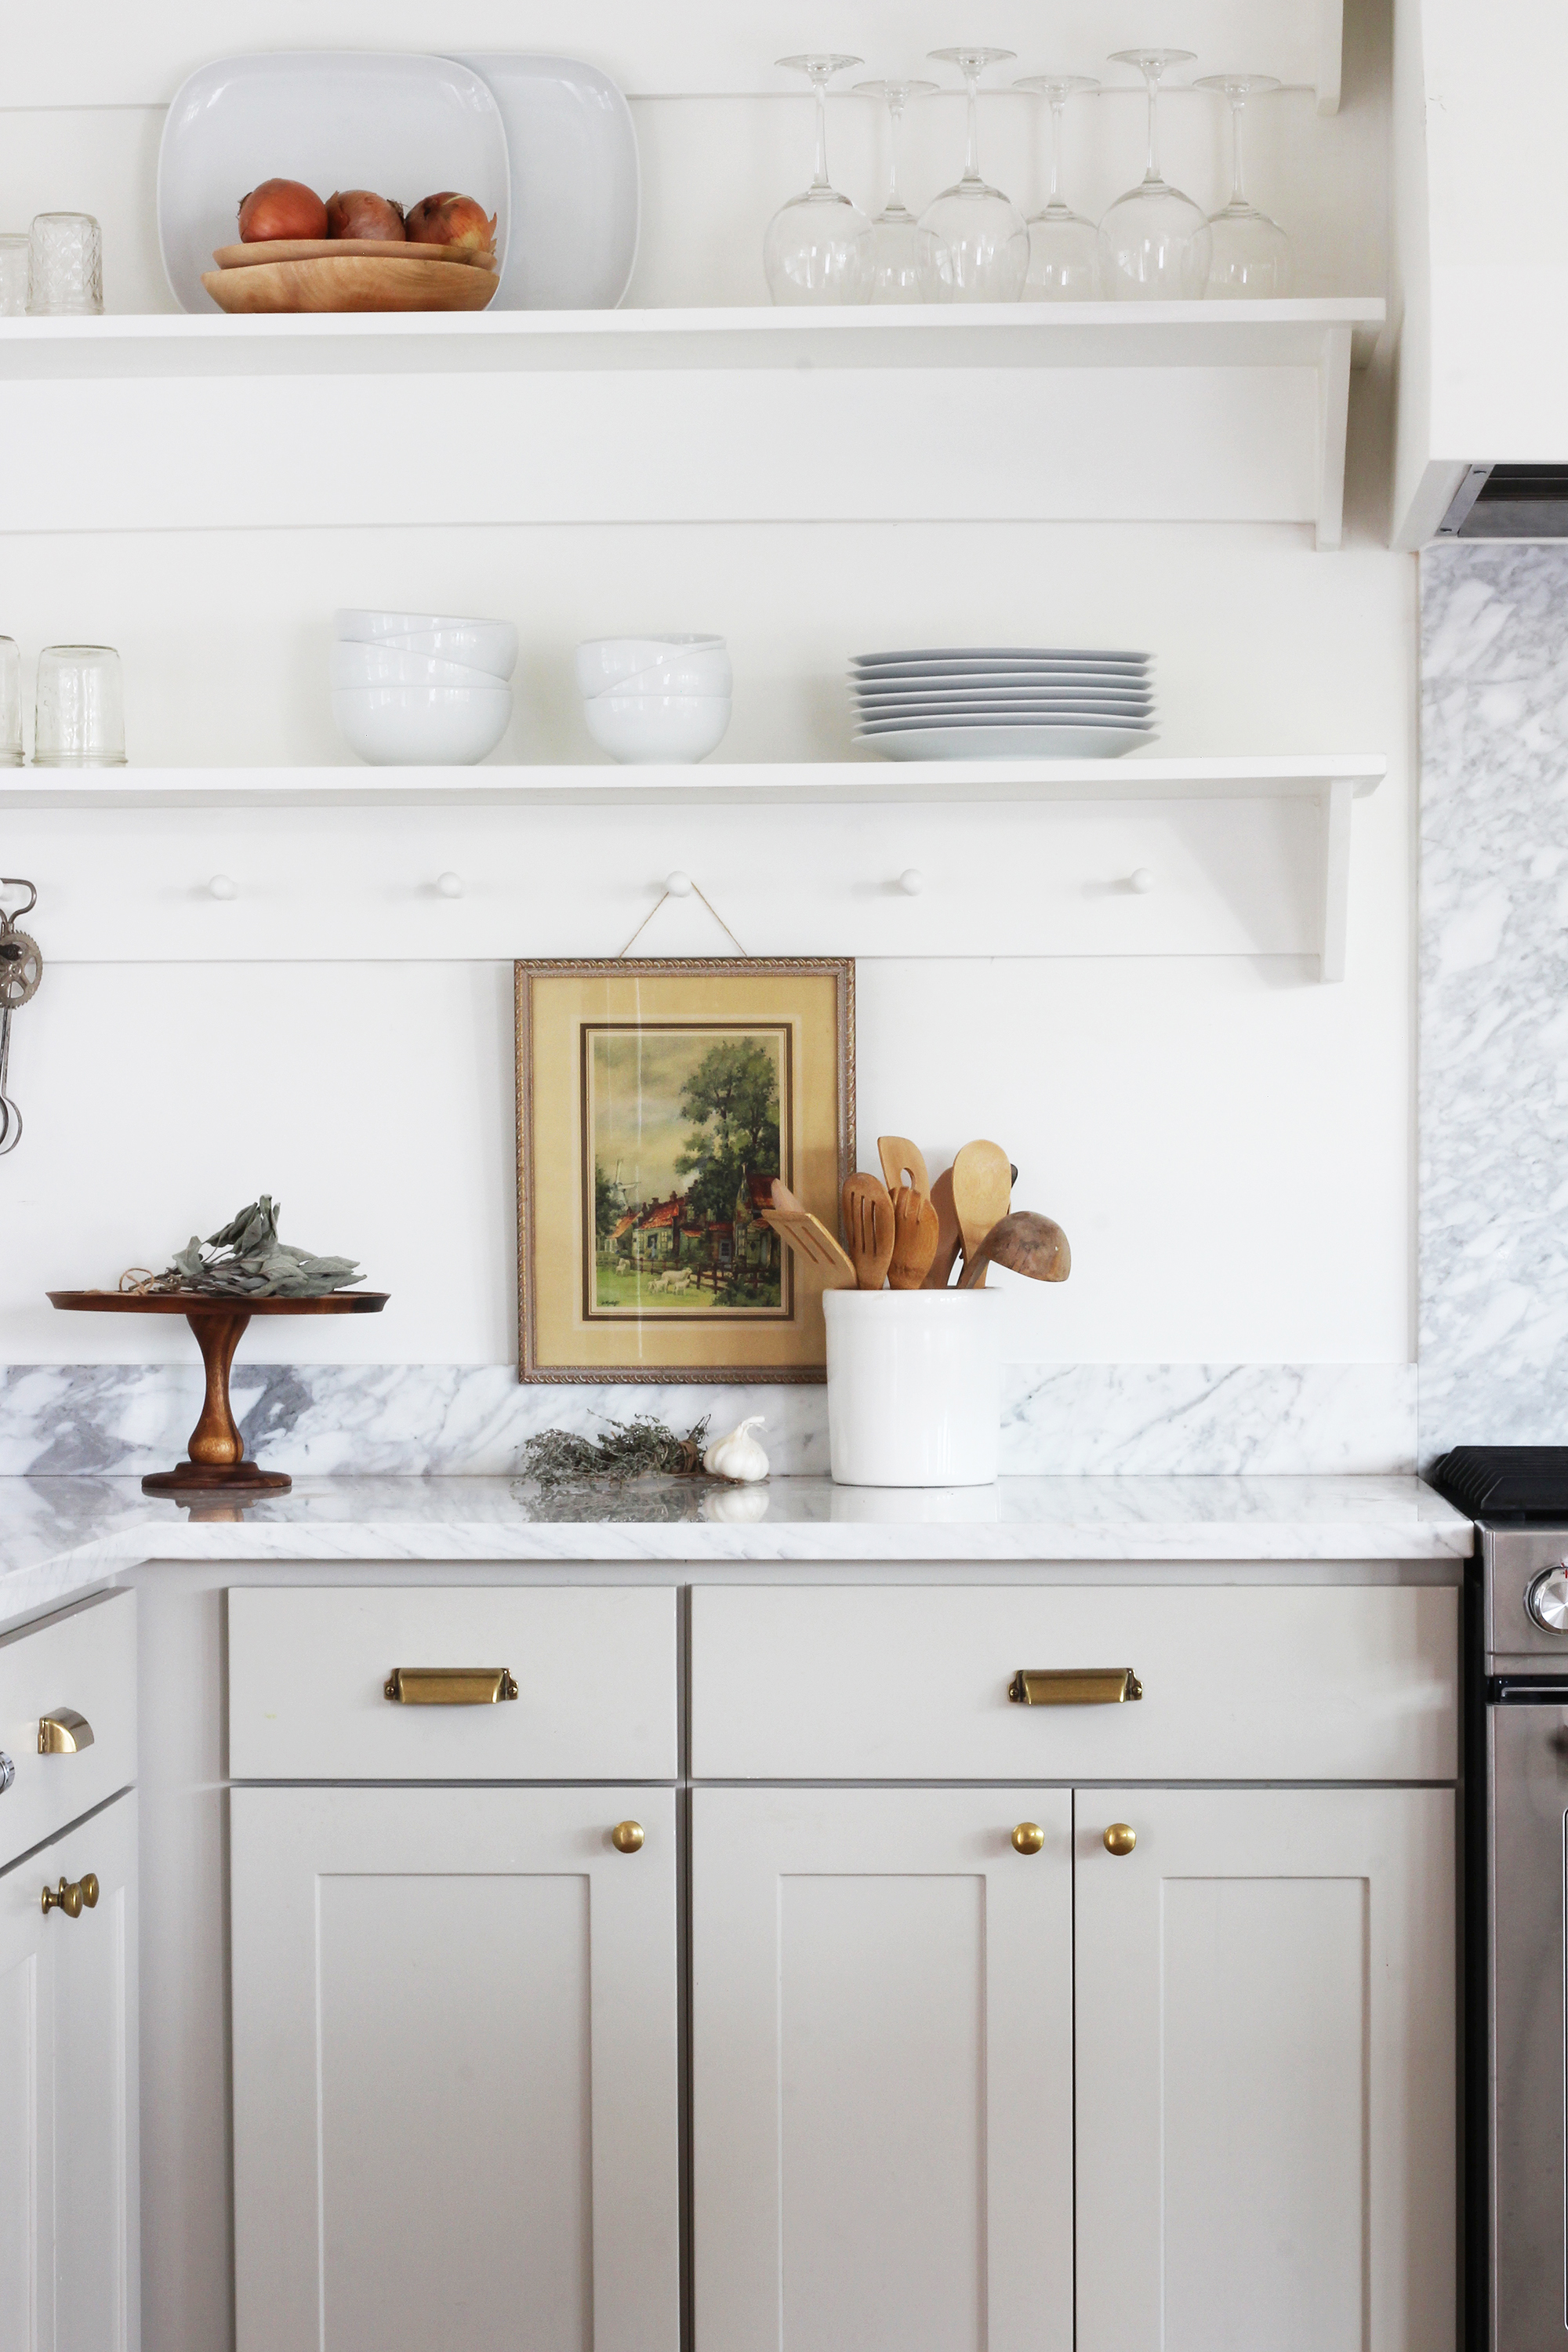 The Grit and Polish - Porch Kitchen Shelves and Cabs 3.2.jpg